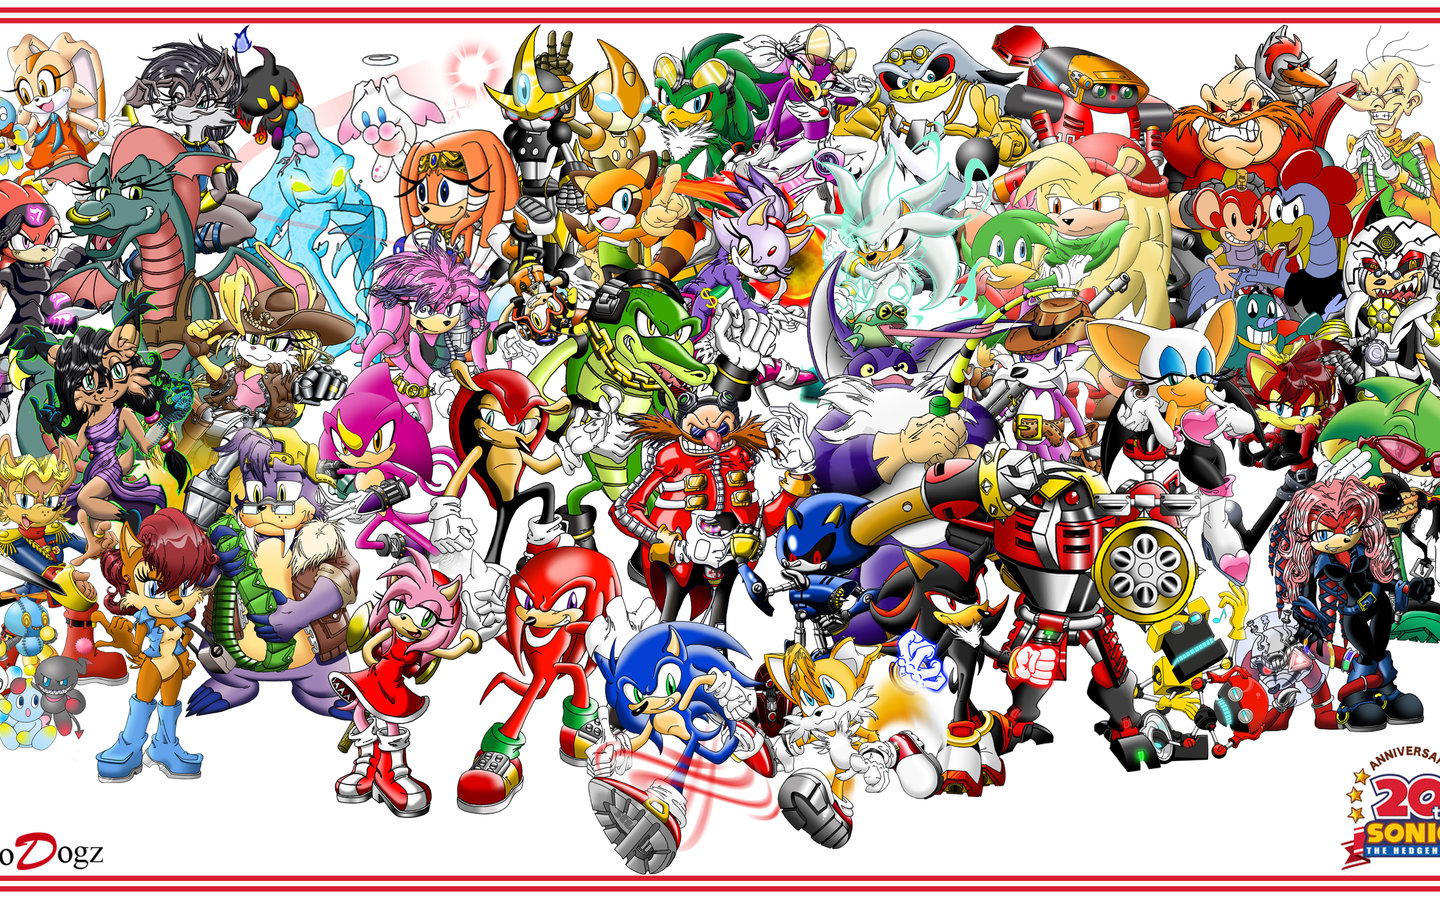 Free Download Sonic The Hedgehog Characters Names Brodogz 20th Sonic Anniversary 1600x900 For Your Desktop Mobile Tablet Explore 49 Sonic Characters Wallpaper Sonic The Hedgehog Wallpaper Sonic Wallpaper Sonic Hd Wallpaper